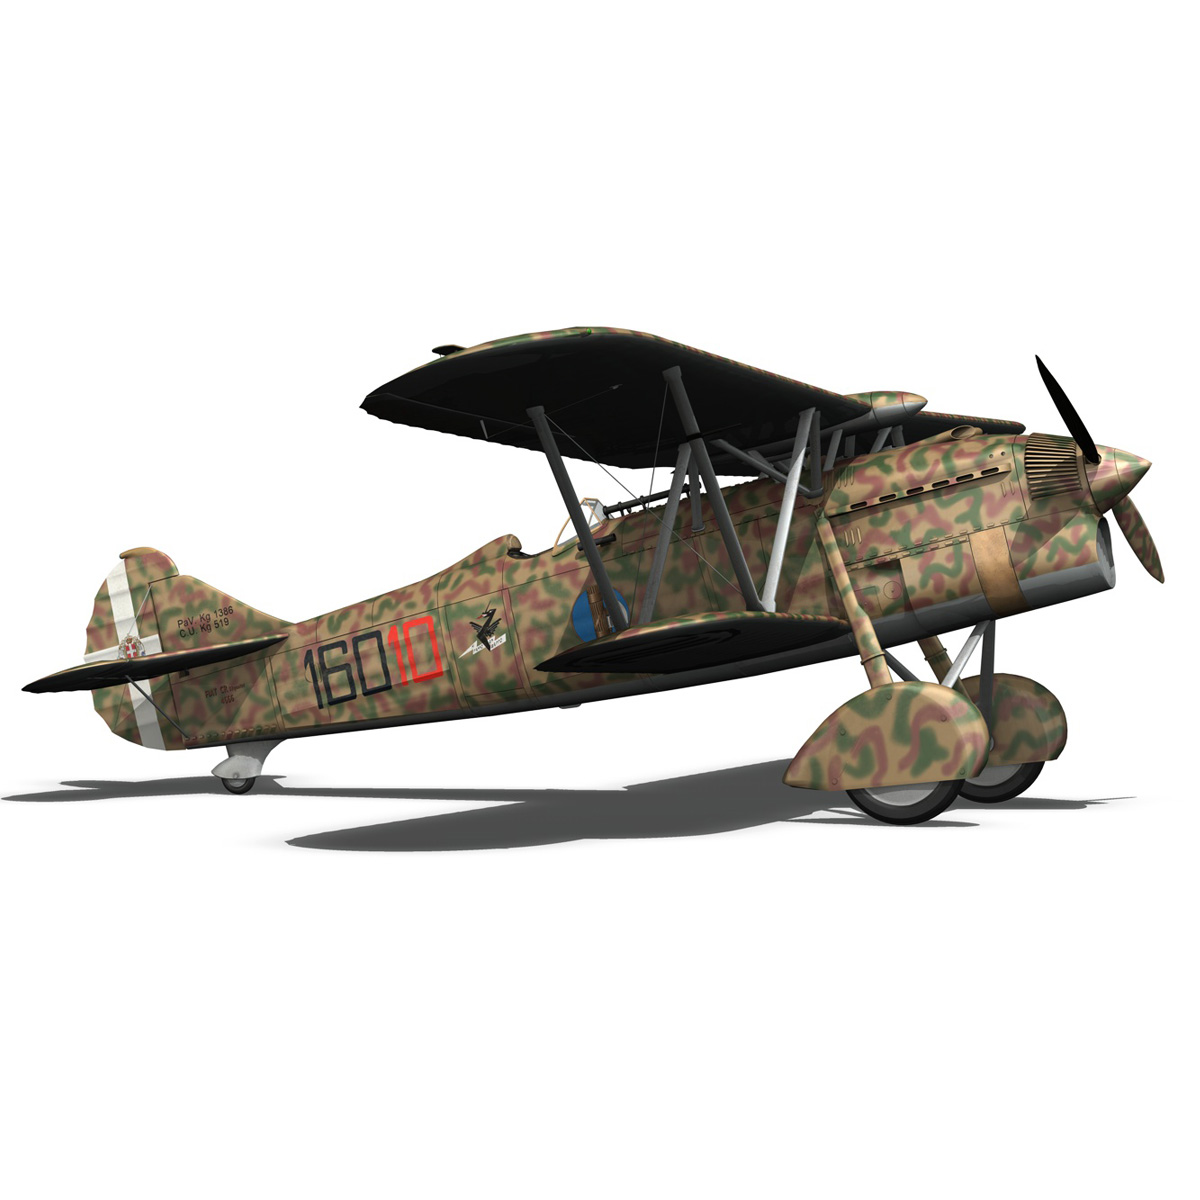 fiat cr.32 – italy airforce – 160 squadriglia 3d model fbx c4d lwo obj 268114